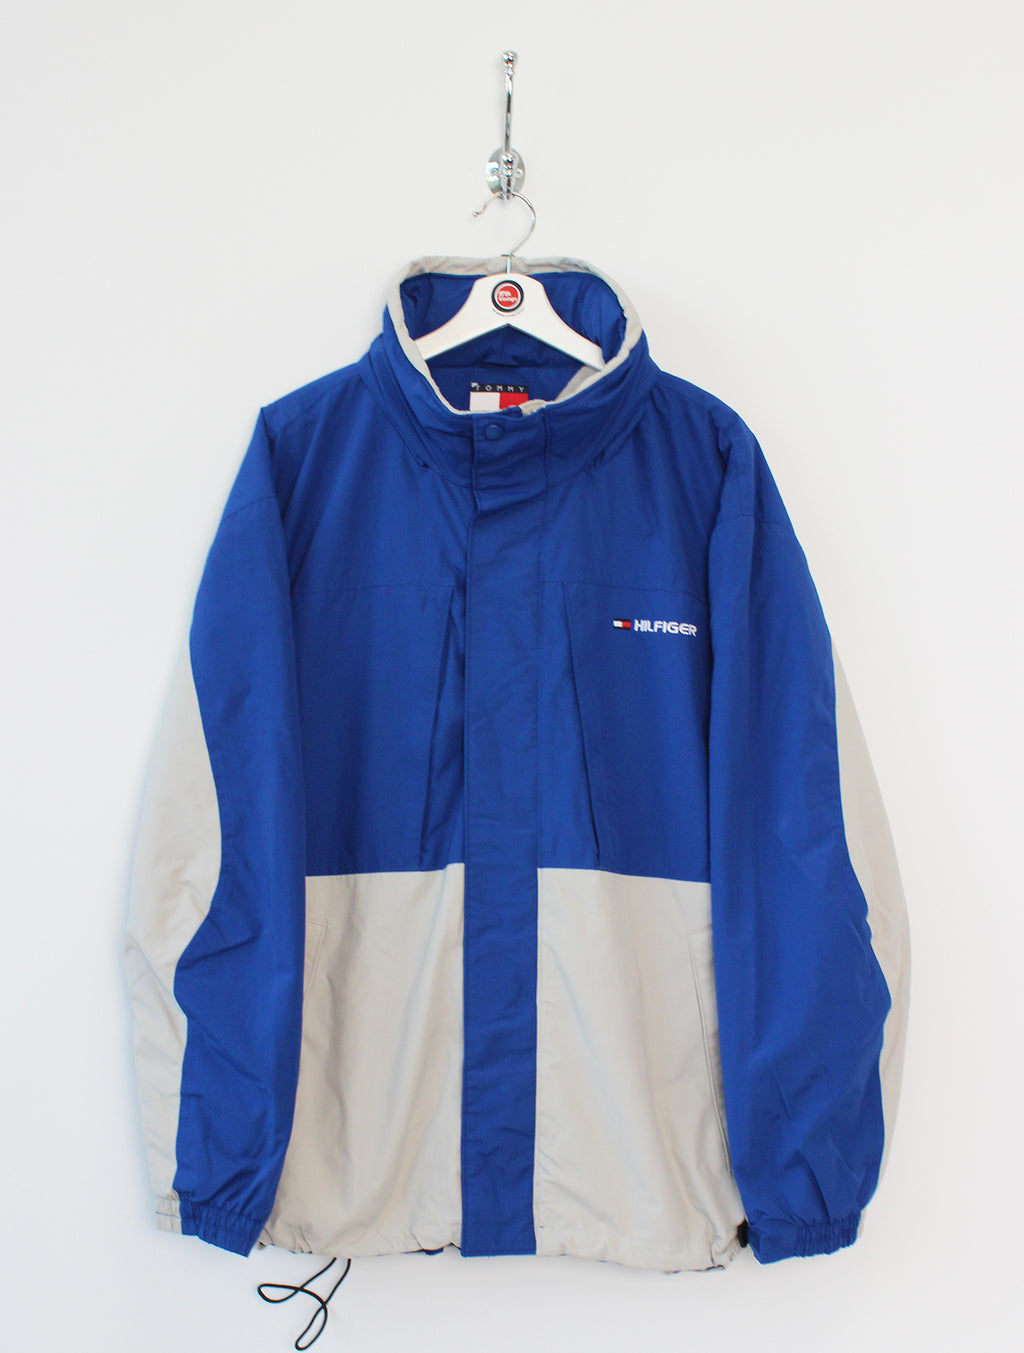 Tommy Hilfiger Fleece Lined Jacket (XL)